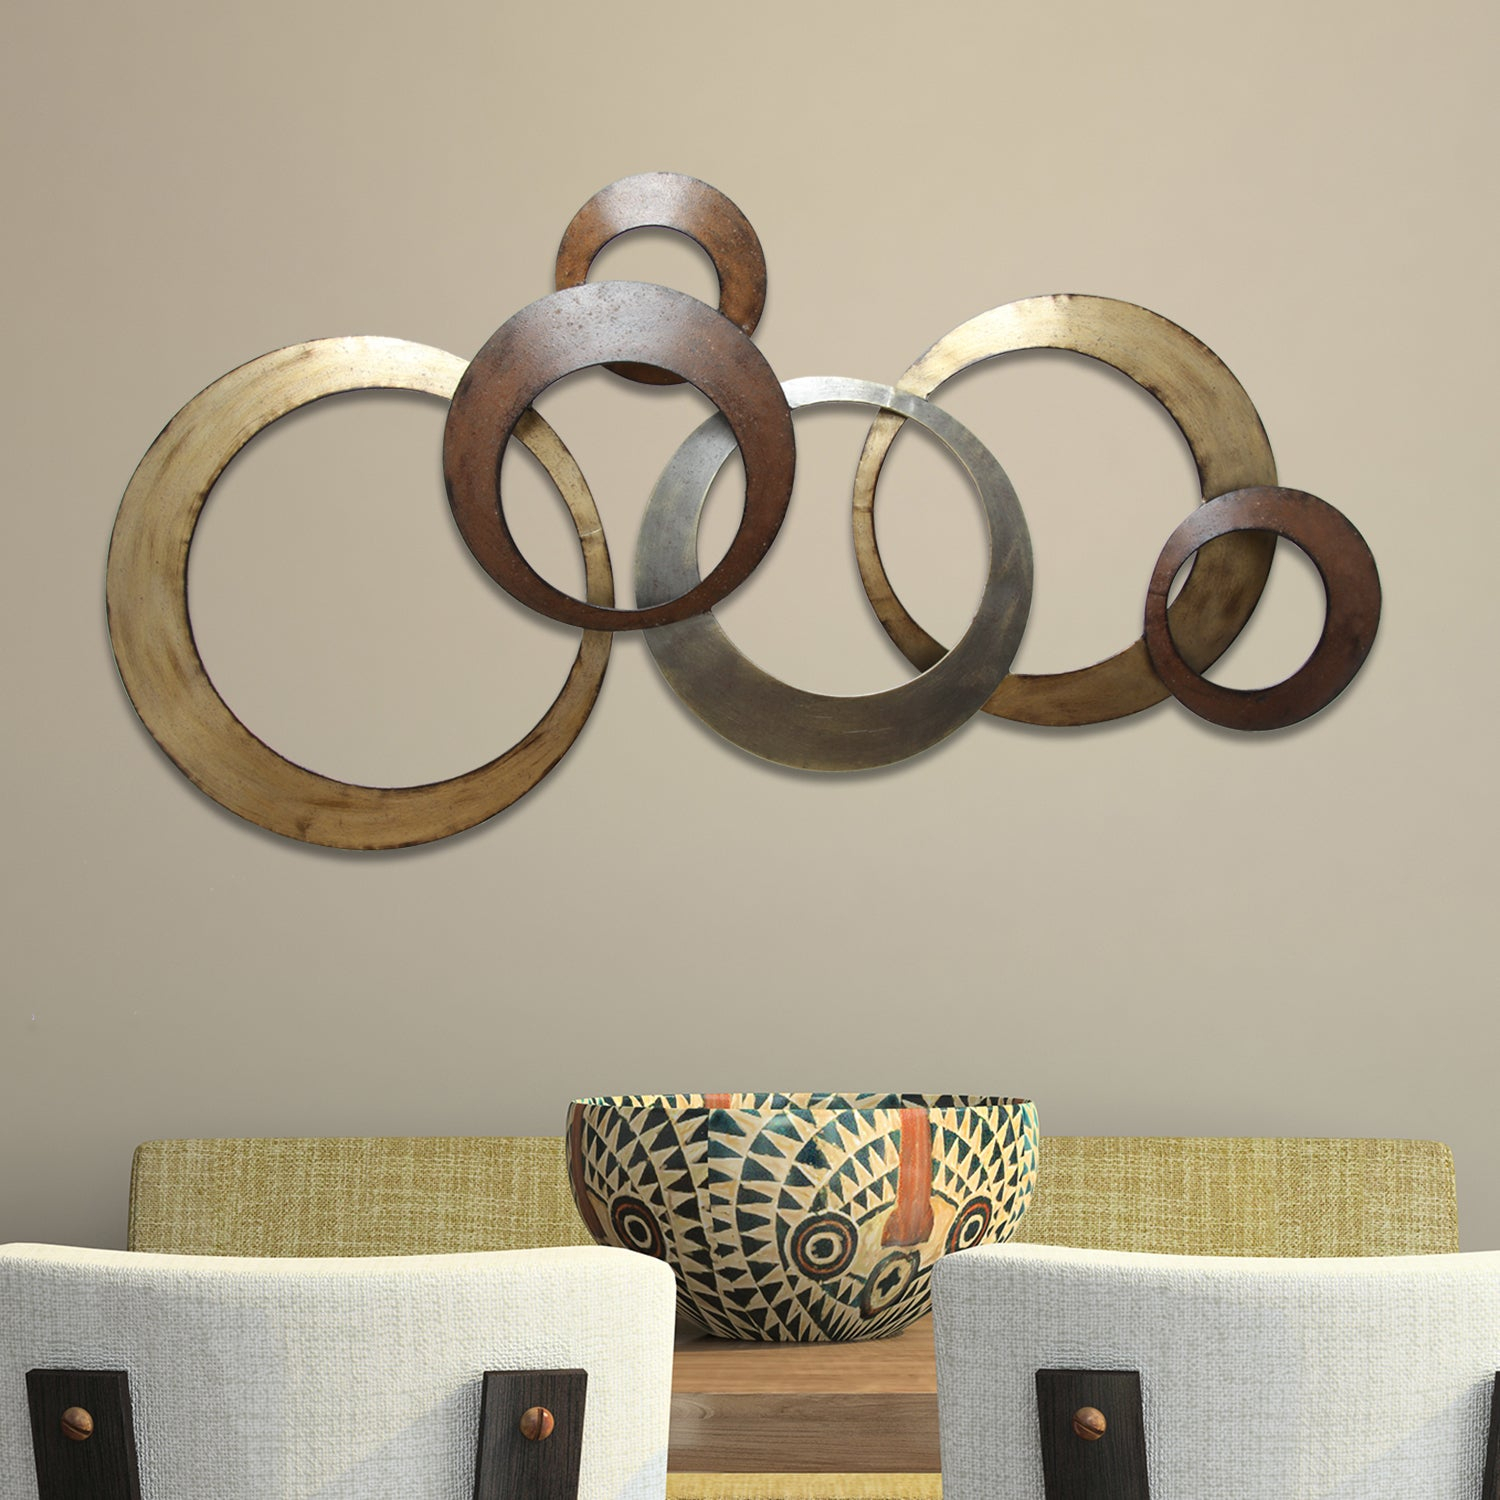 Stratton Home Decor Interlocking Circles Metal Wall Decor Regarding Rings Wall Decor (View 8 of 30)